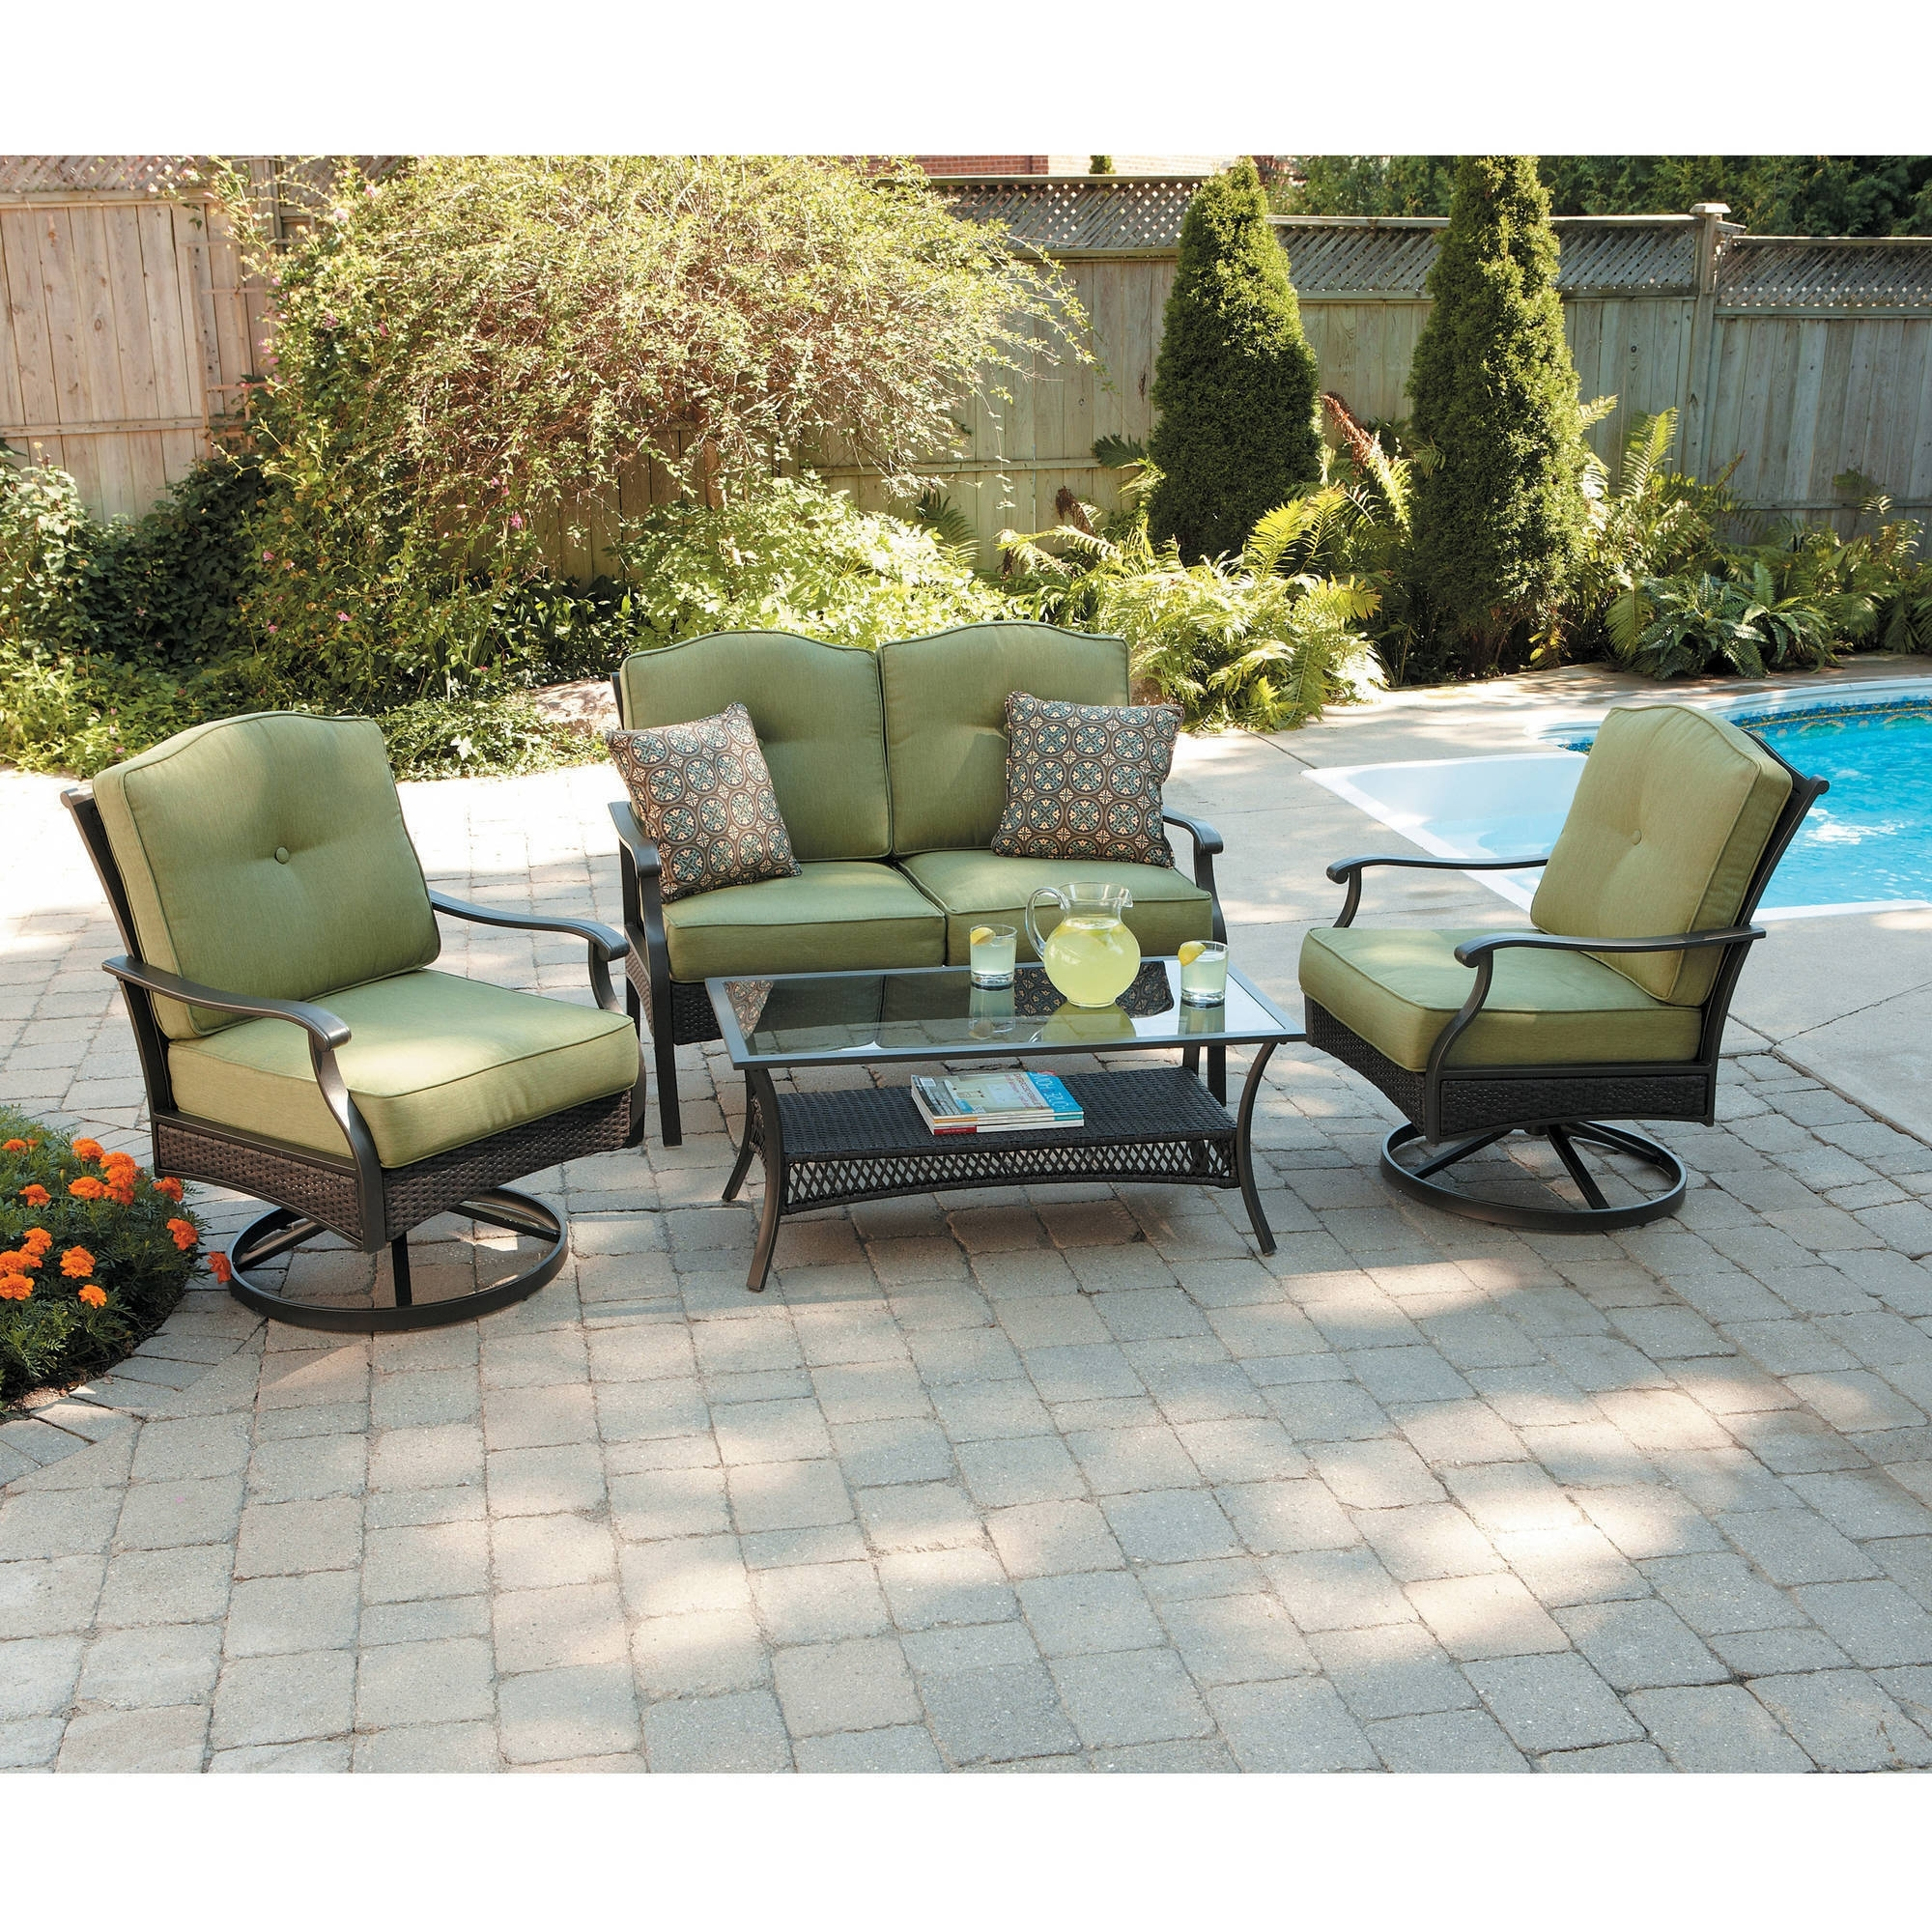 Patio Conversation Sets With Storage In Popular Better Homes And Gardens Providence 4 Piece Patio Conversation Set (View 12 of 15)